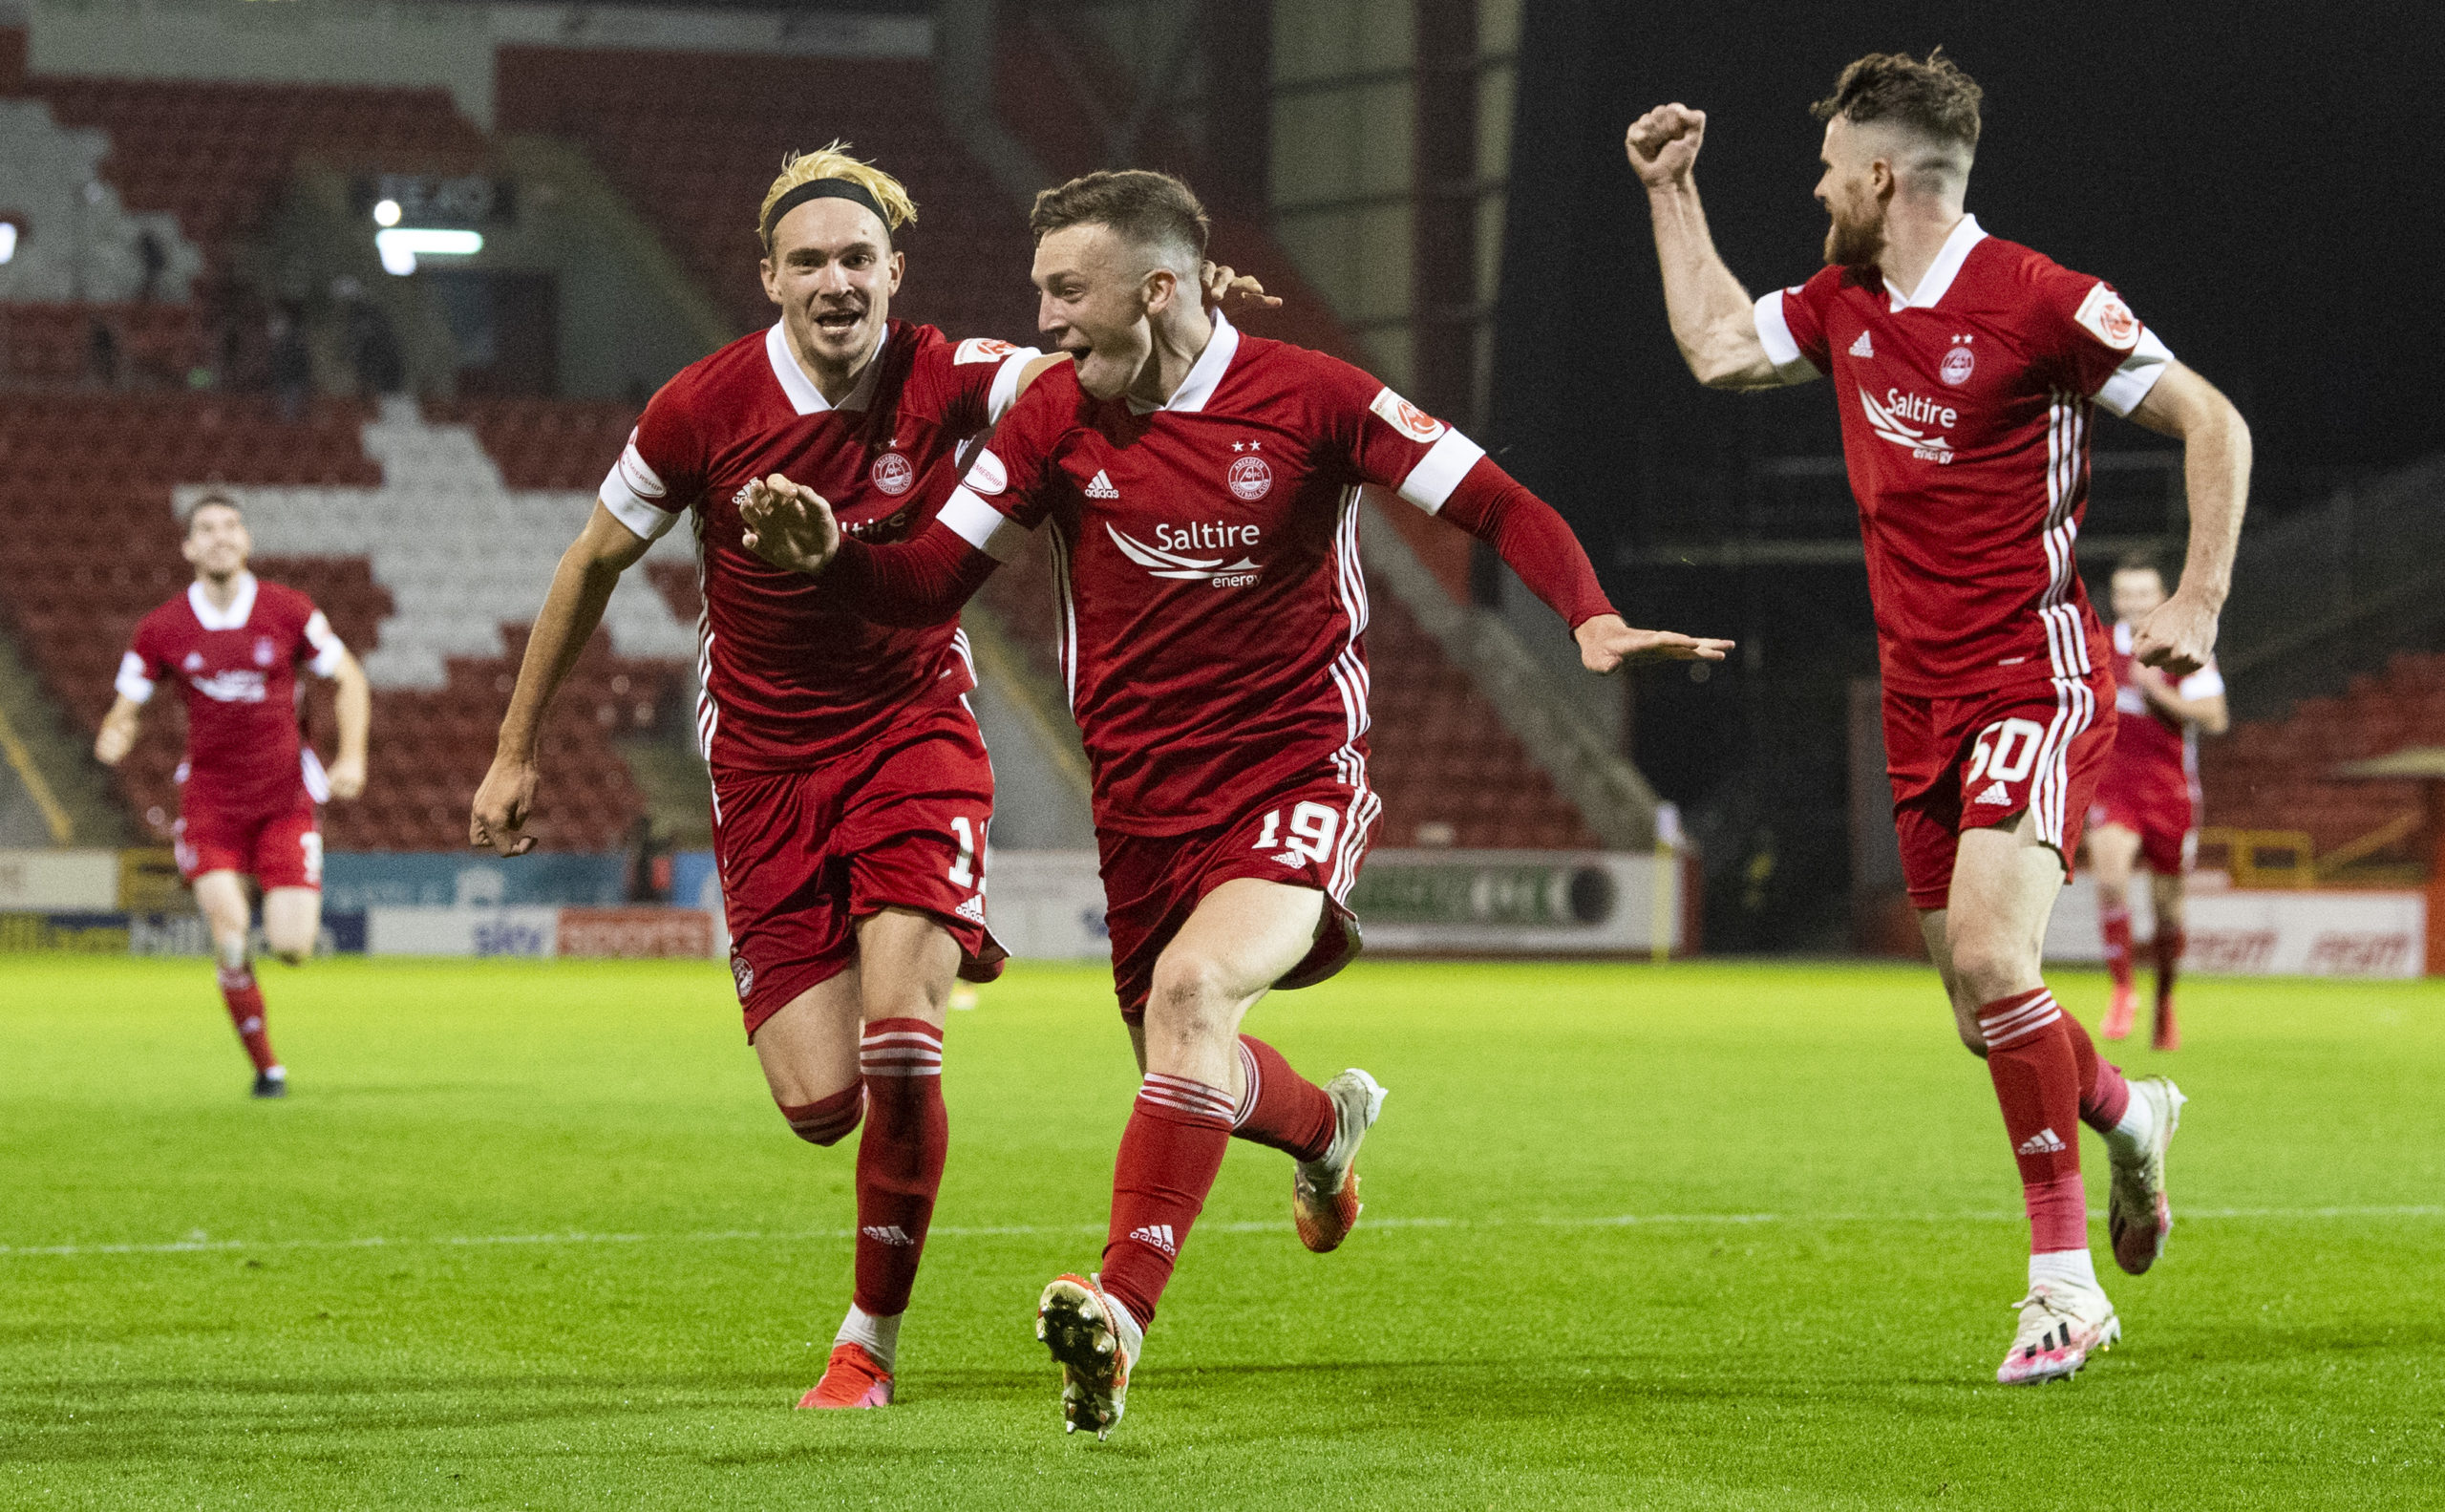 Lewis Ferguson, centre, celebrates after scoring the winner against St Mirren in the home league game against the Buddies.